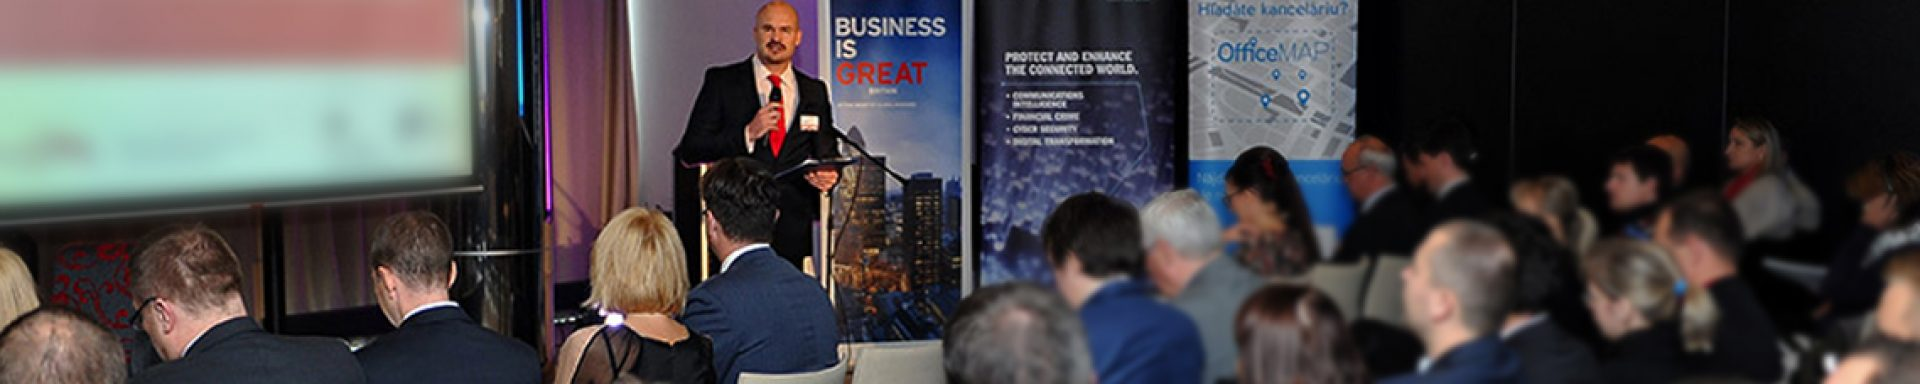 What is the best way to expand our Business in Central & Eastern Europe?